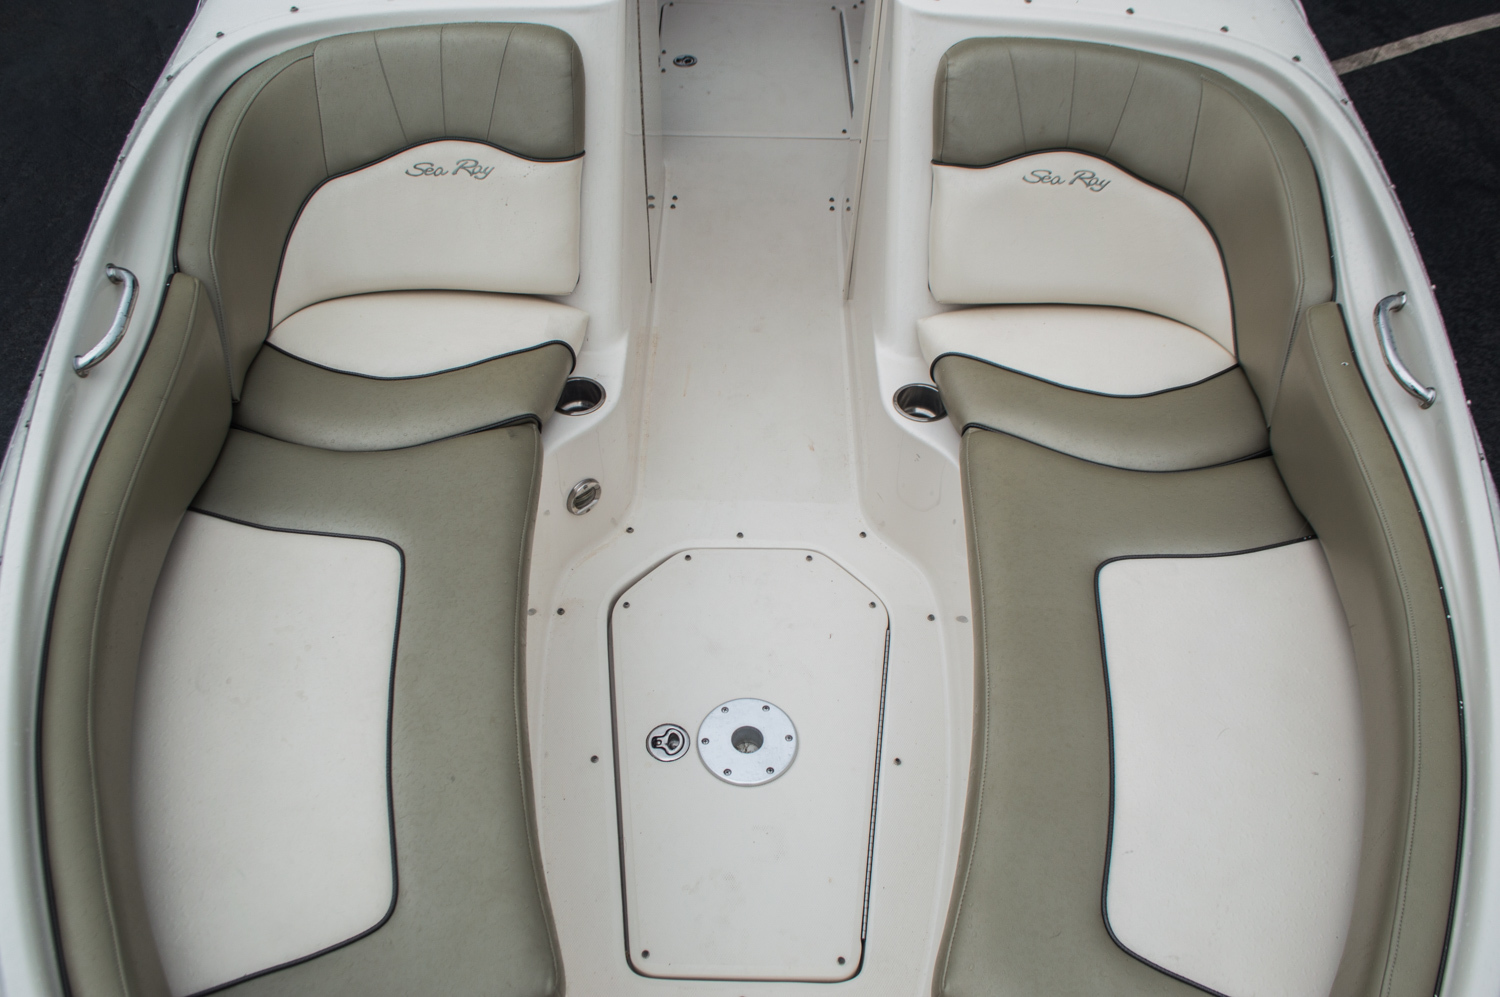 Thumbnail 10 for Used 2005 Sea Ray 240 Sundeck boat for sale in West Palm Beach, FL